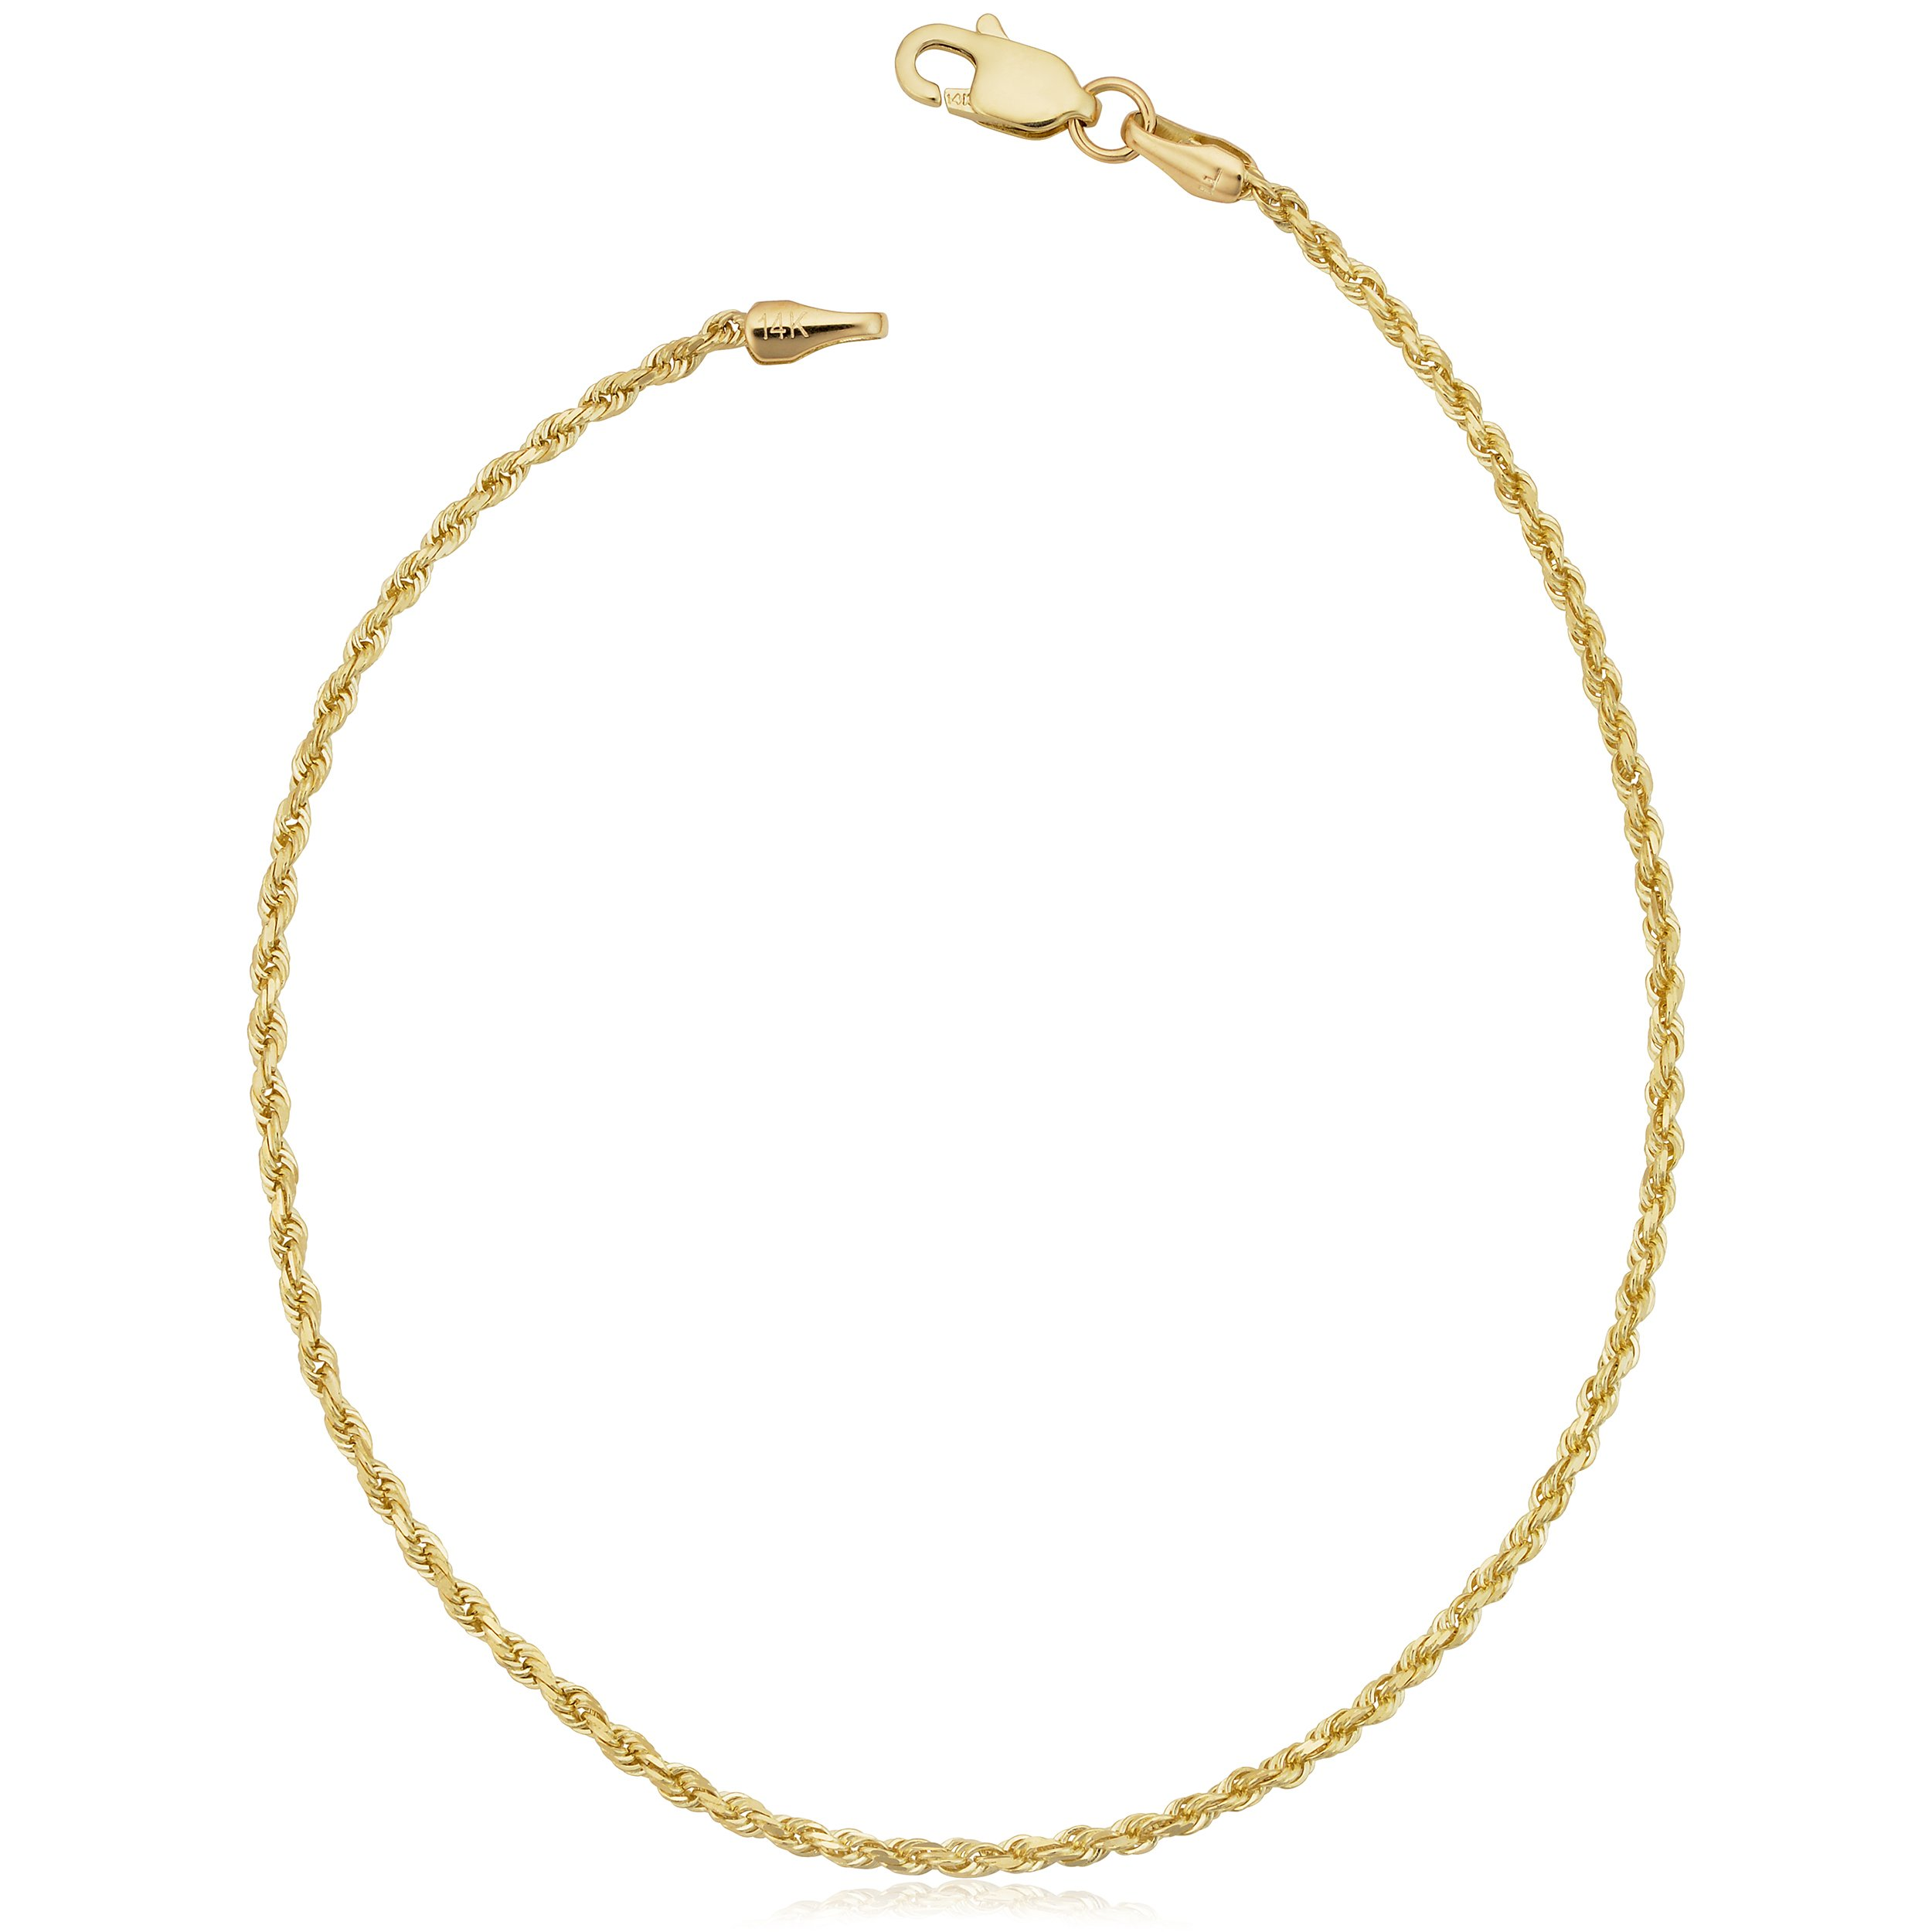 Solid 10k Yellow Gold Rope Chain Bracelet (1.5mm, 8.5 inch) by Kooljewelry